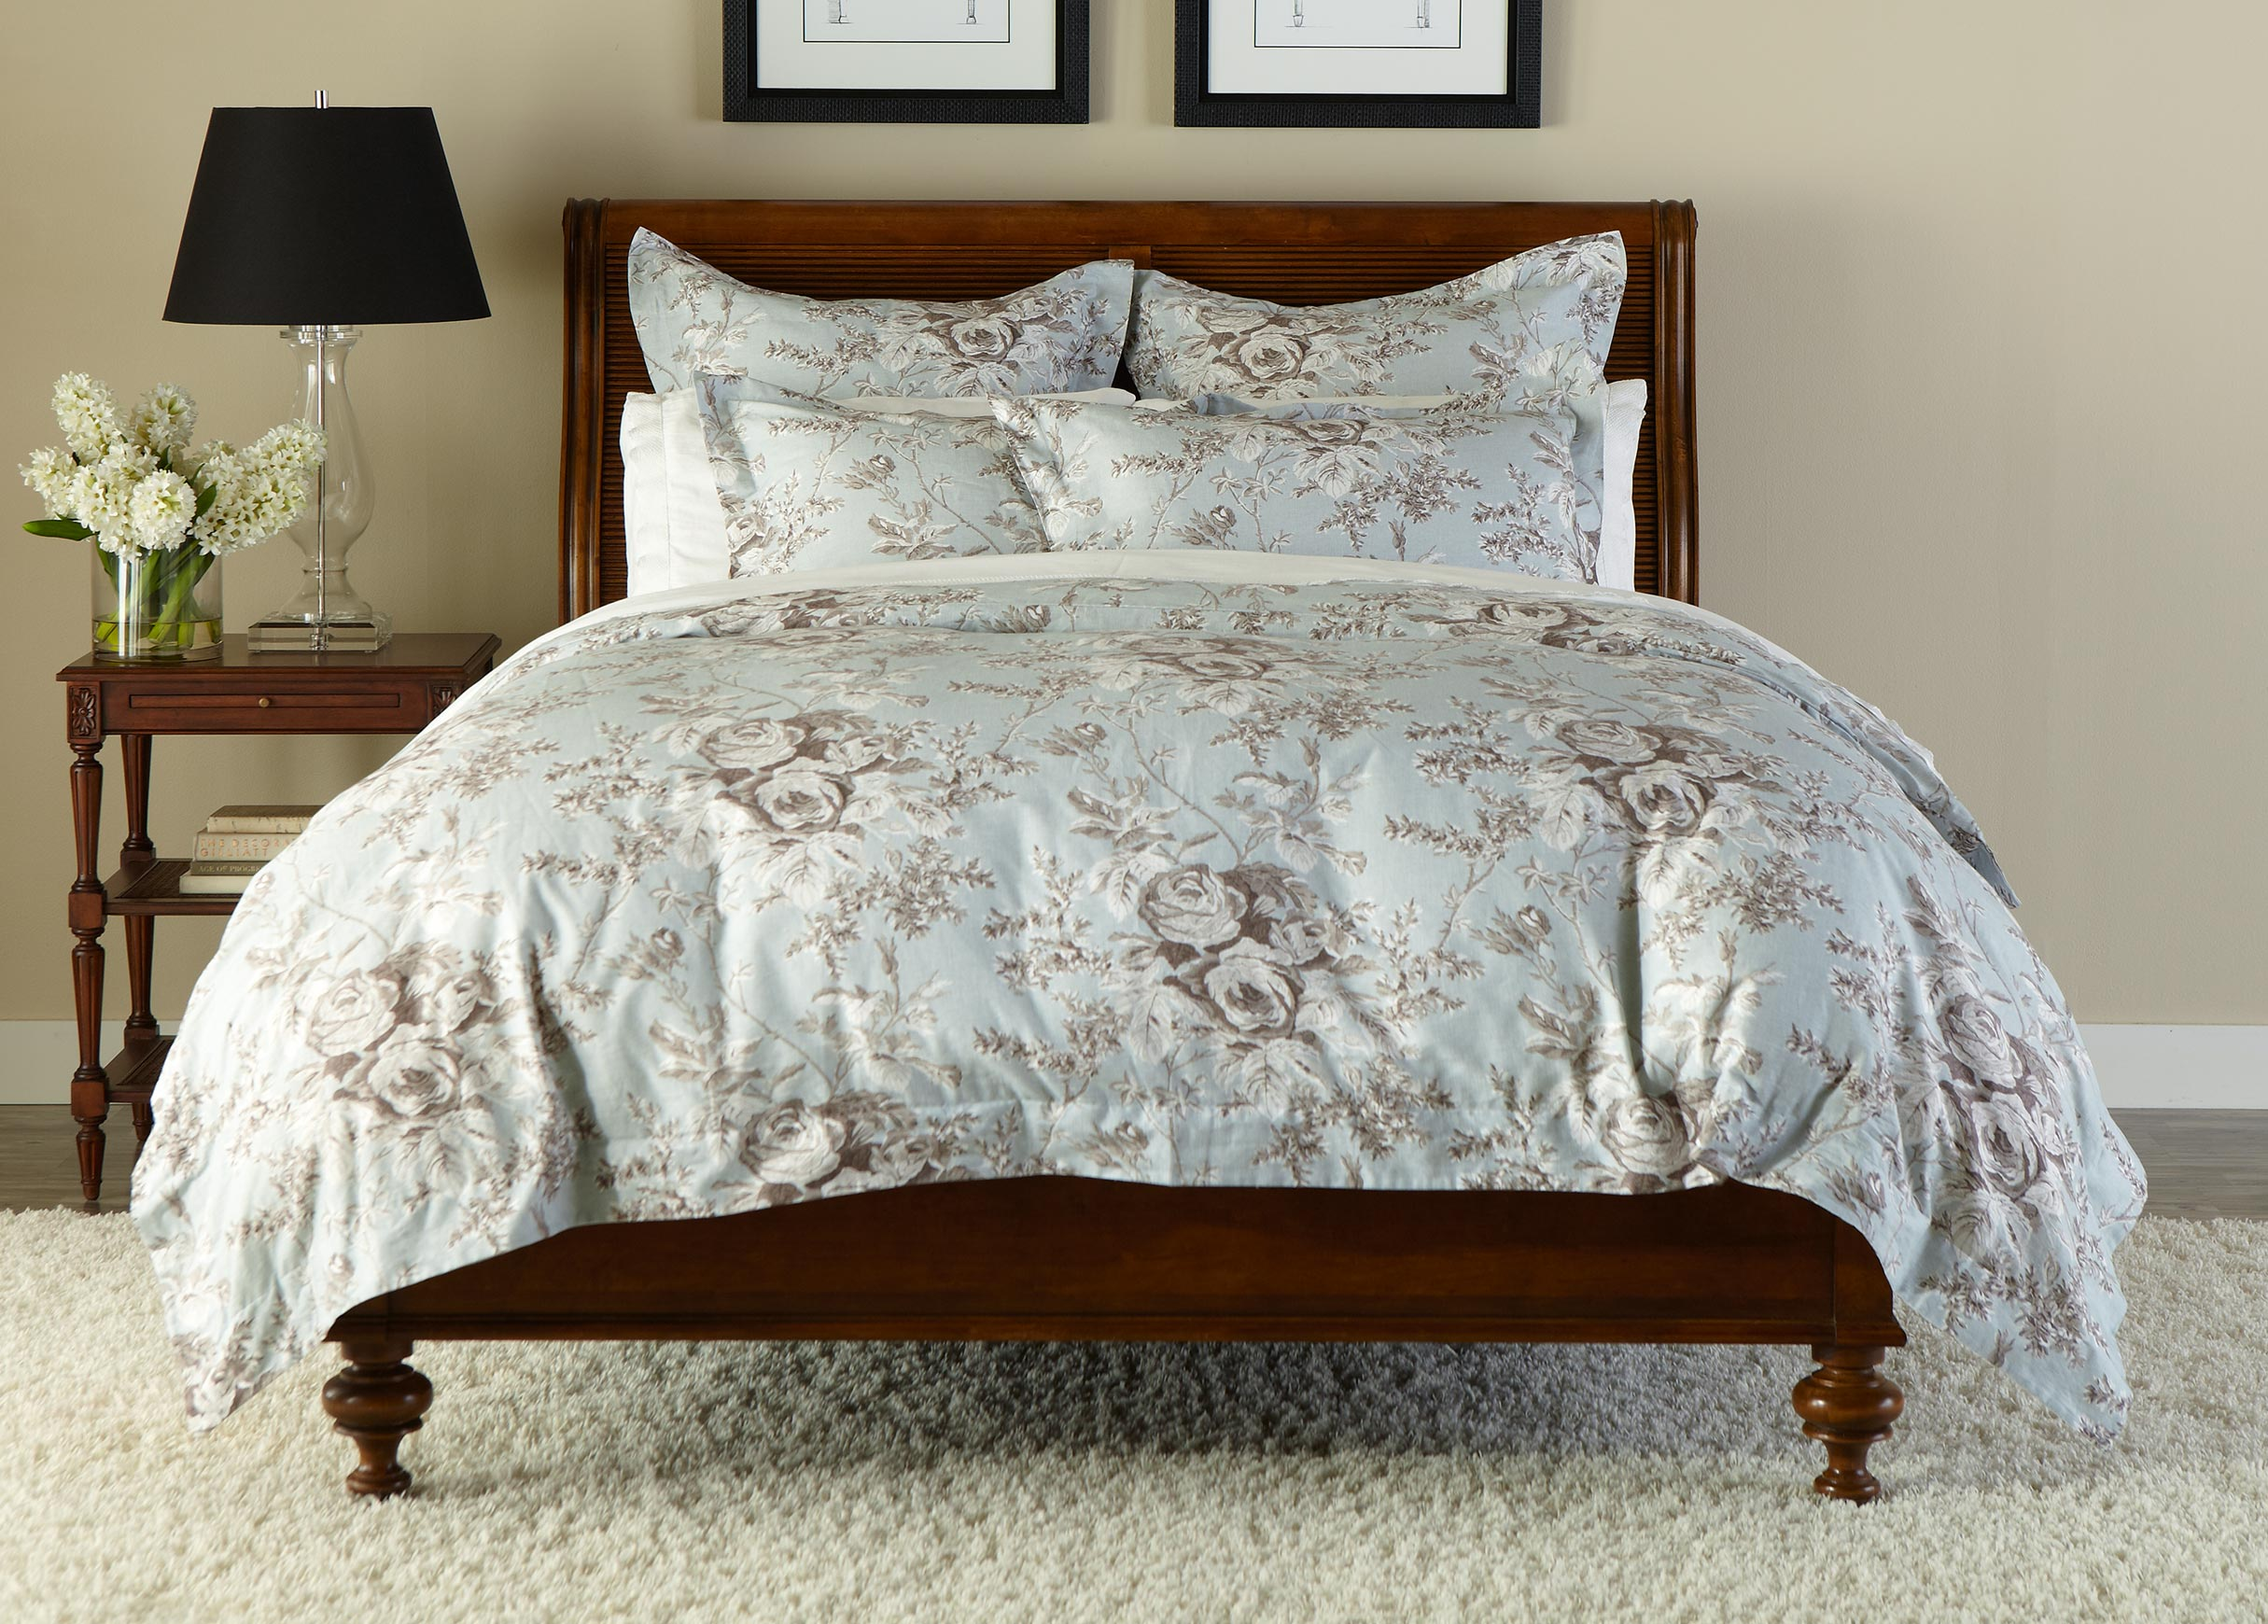 images loxley floral duvet cover and shams   largegray. loxley floral duvet cover and shams  duvet covers